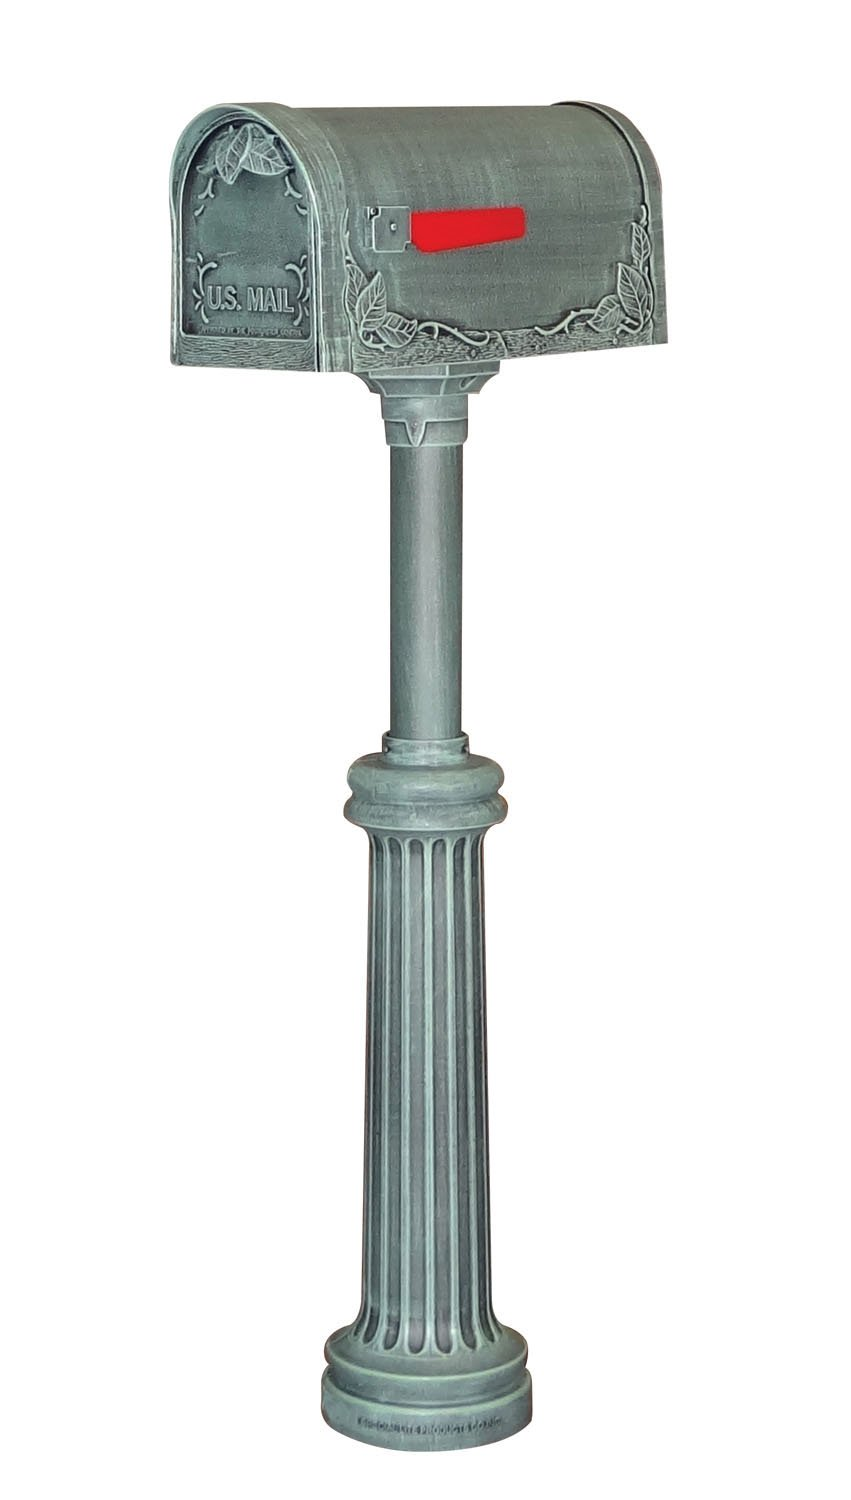 Special Lite Floral Curbside Mailbox with Bradford Surface Mount Mailbox Post - Verde Green